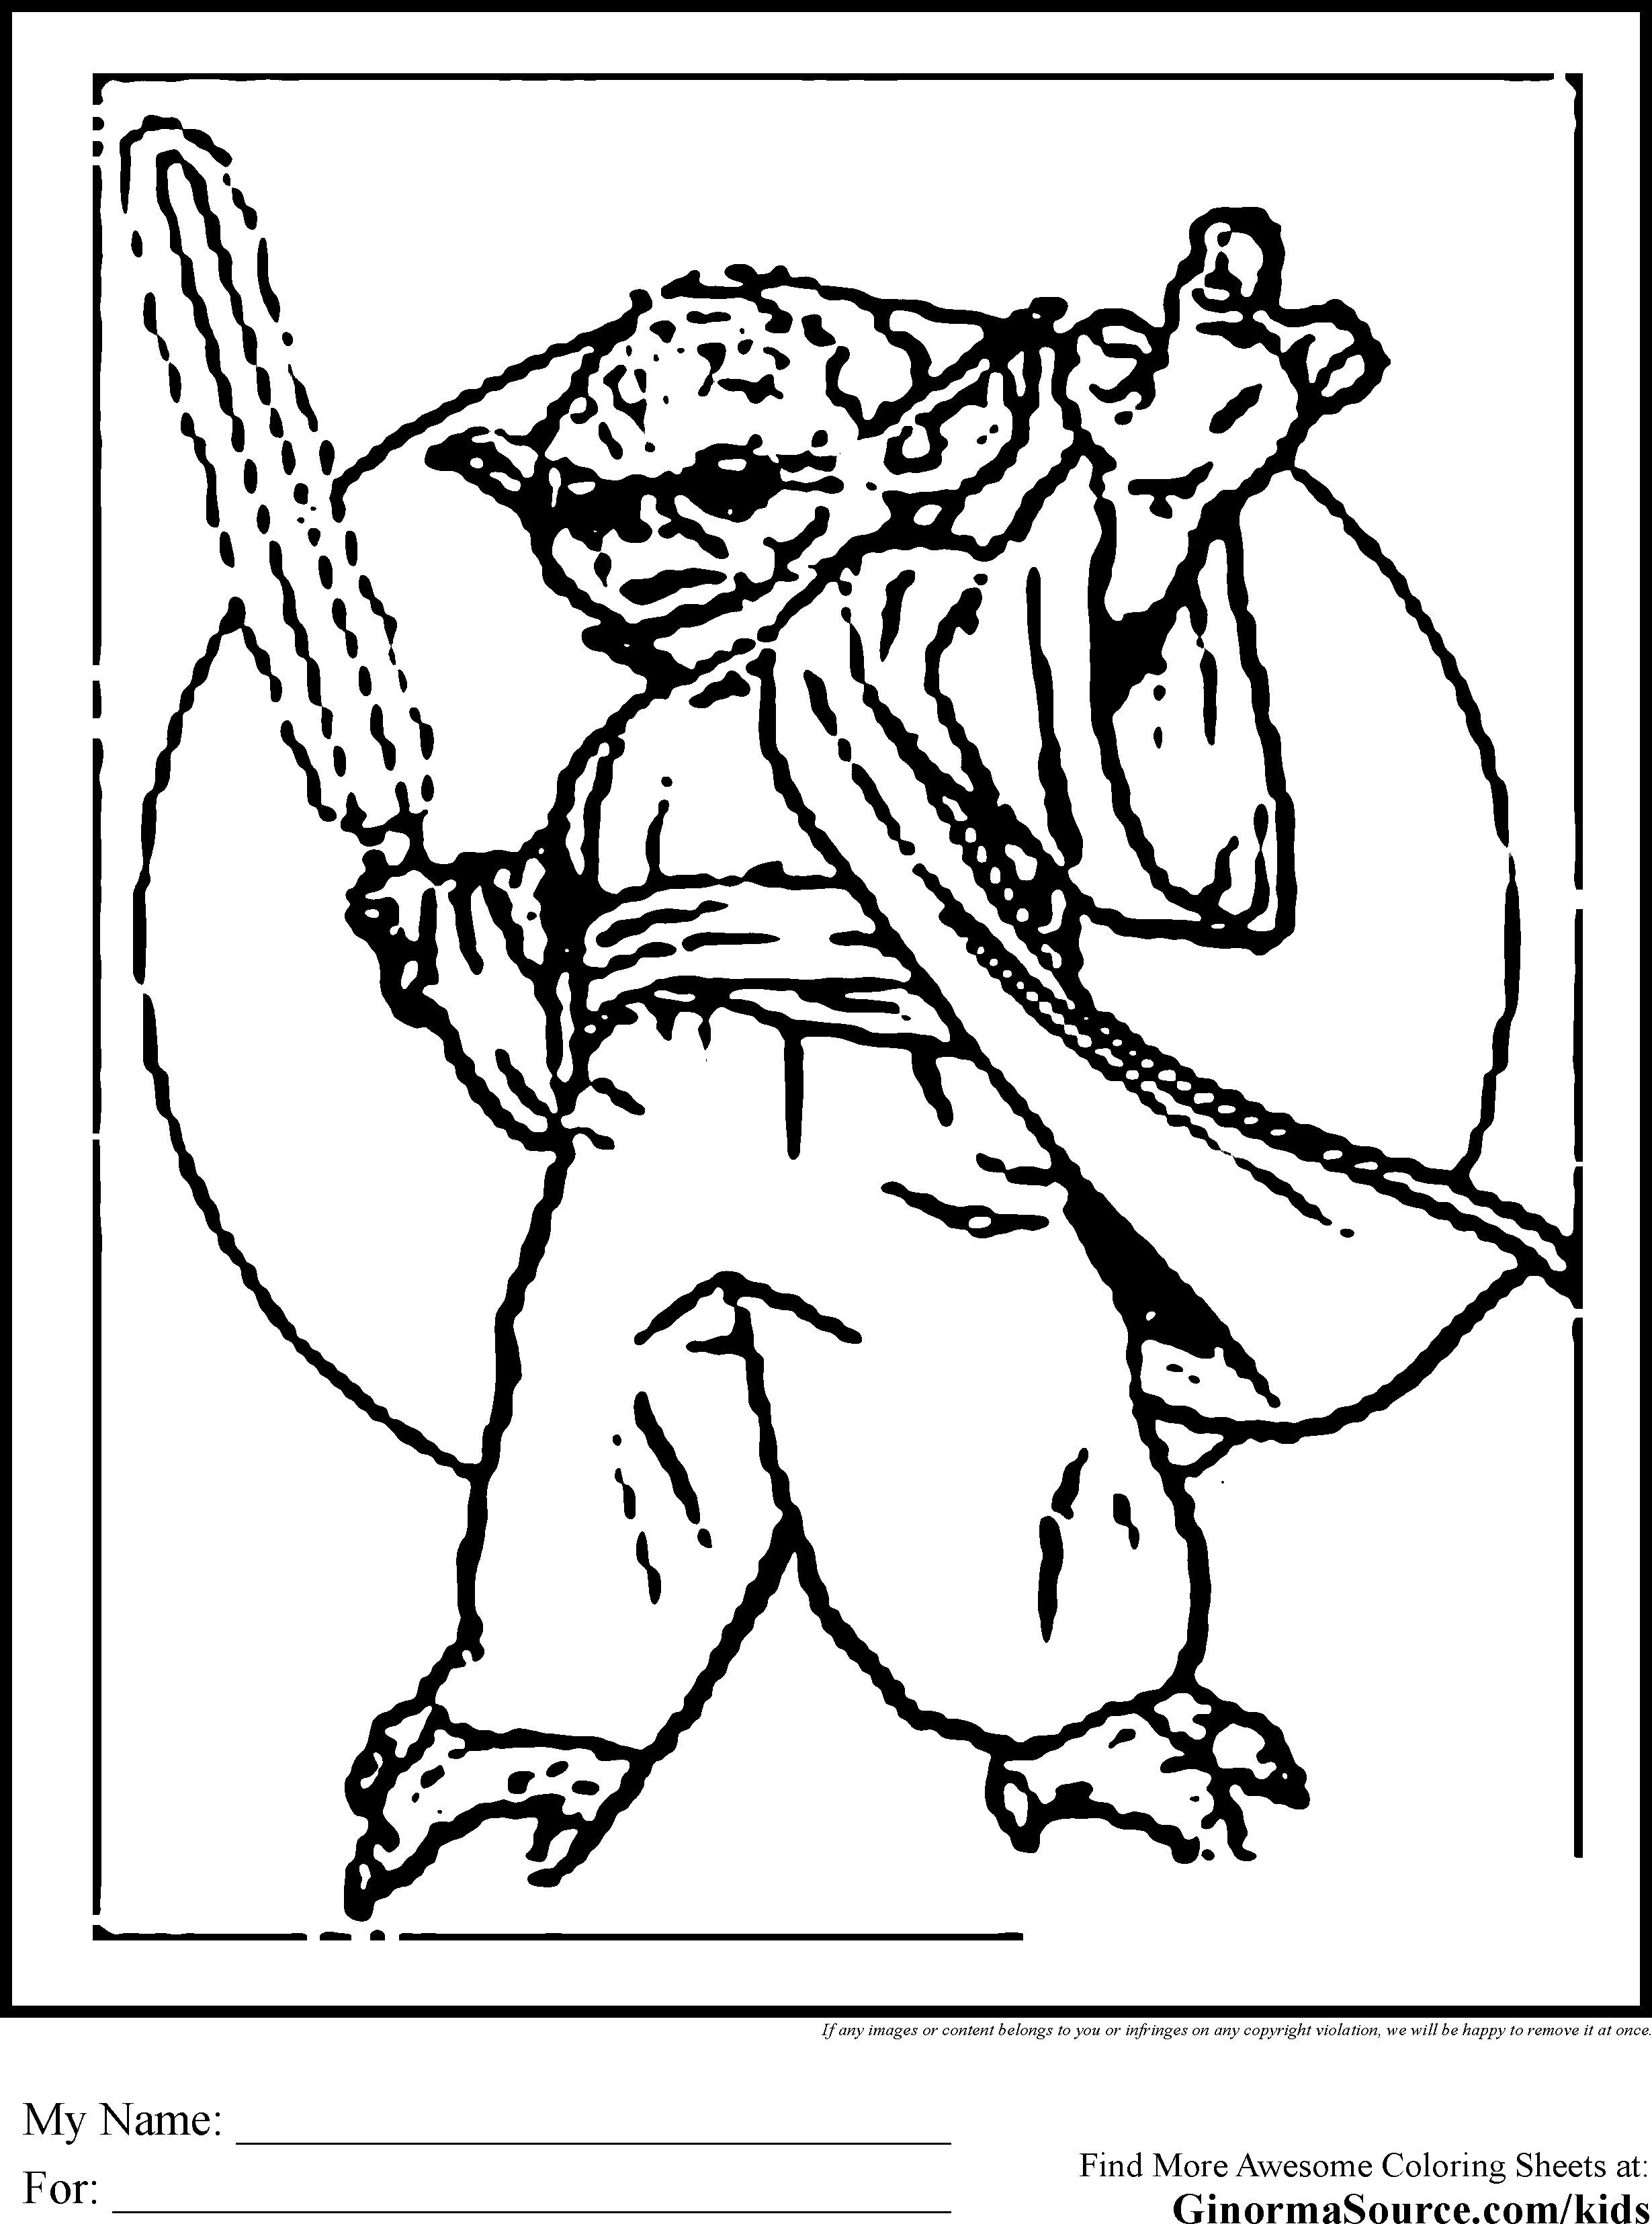 Coole Ausmalbilder Graffiti Neu Star Wars Colouring Pages Yoda Coloring Pages Luxus Graffiti Fotos